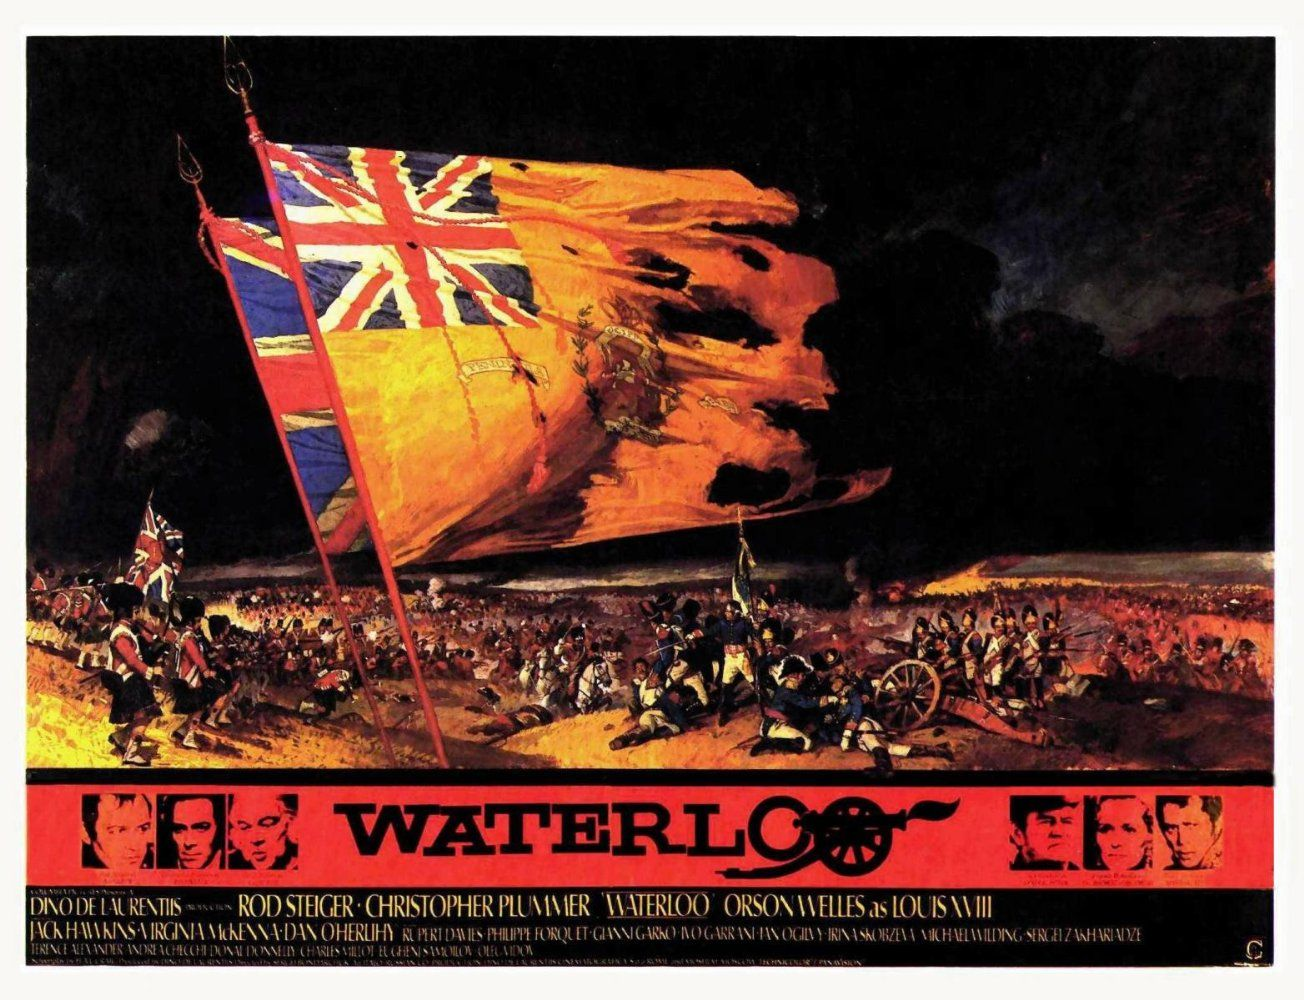 Waterloo (1970) | Old movie posters, Film posters, Historical film